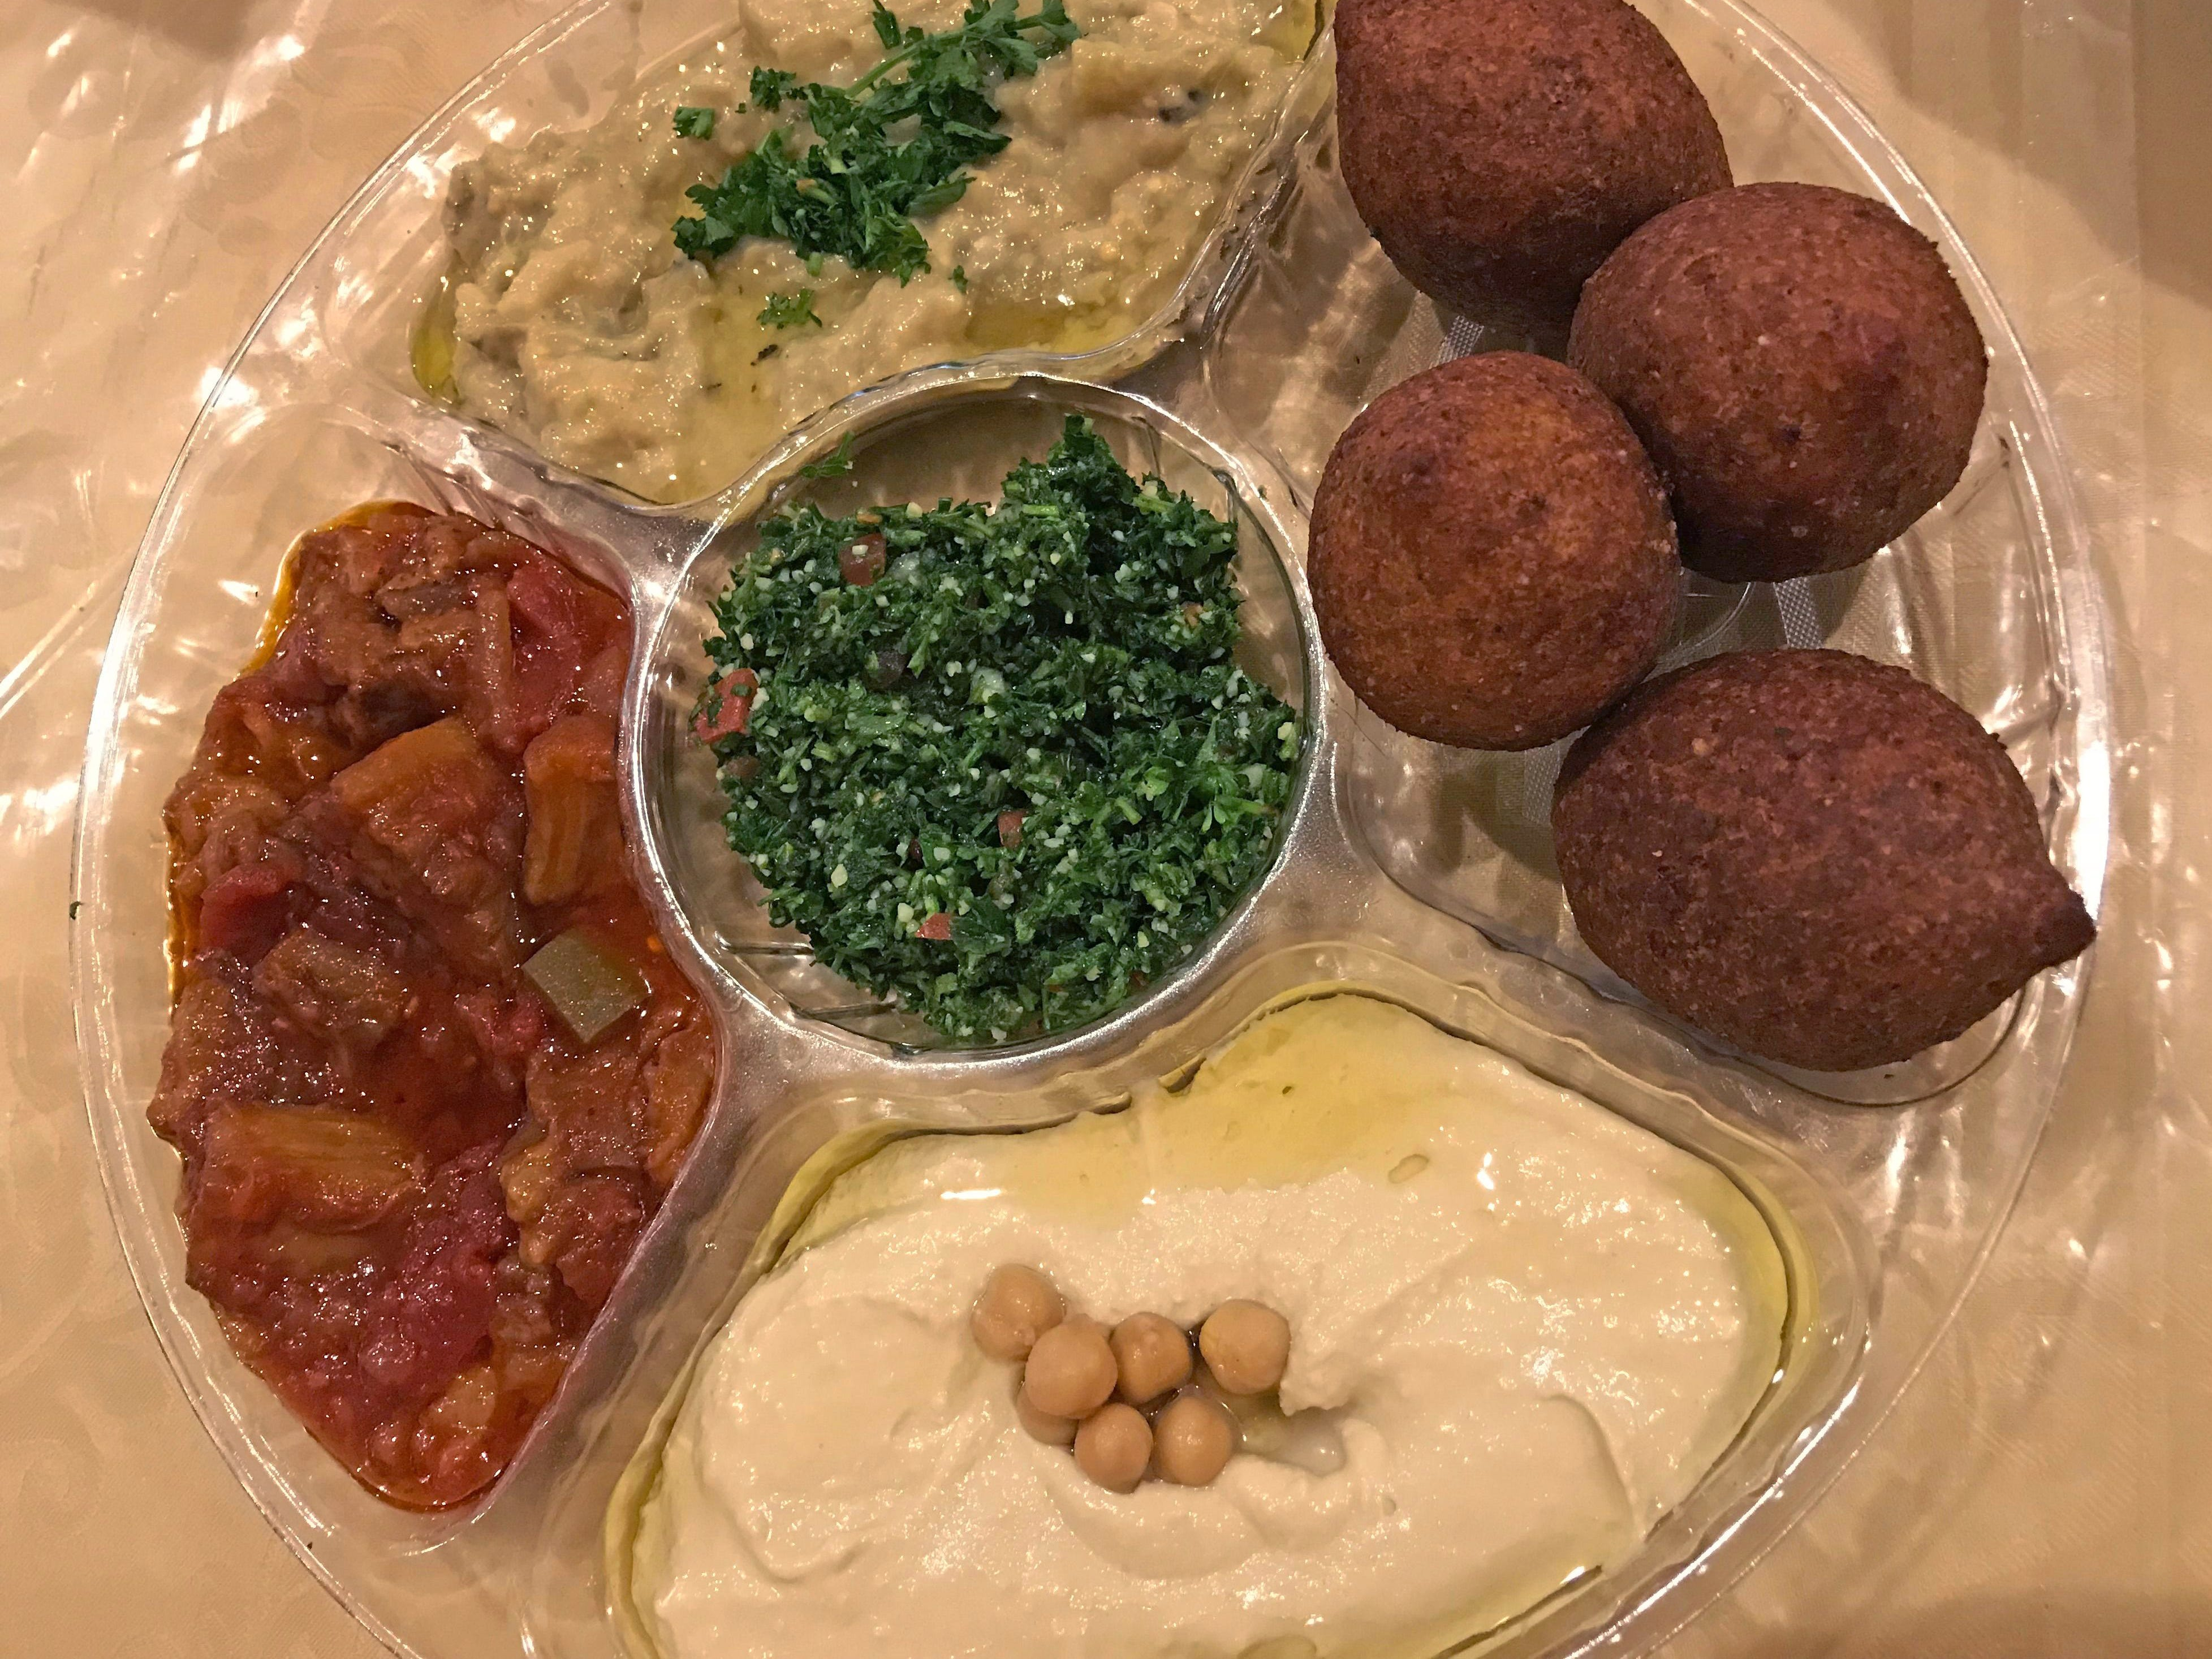 The mixed appetizer plate at Damascus Gate has (clockwise from top) baba ghanouj, meat-filled kibbeh, hummus, mousaaka and (in the center) tabbouleh.